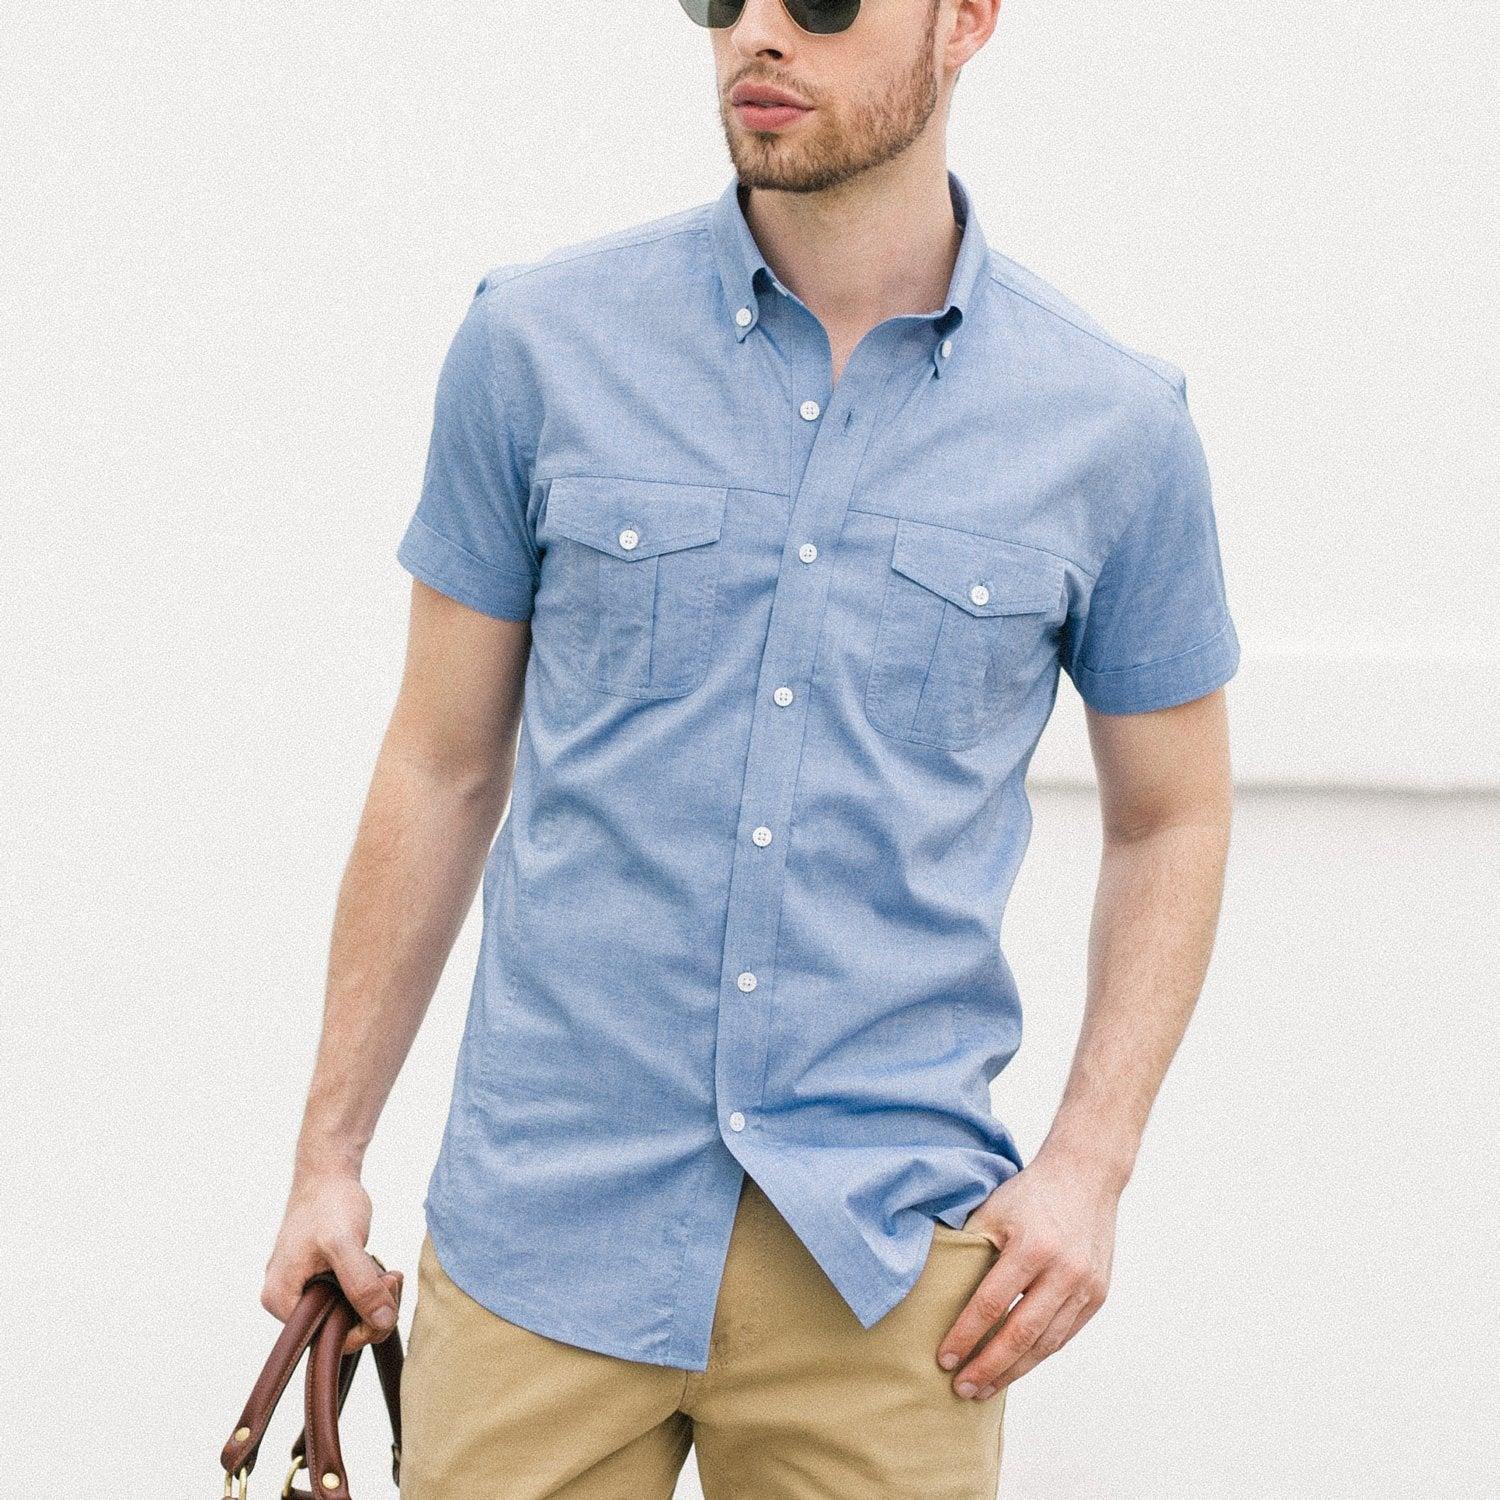 Men's Short Sleeve Casual Shirt Correct Fit Versus Boxy Fit